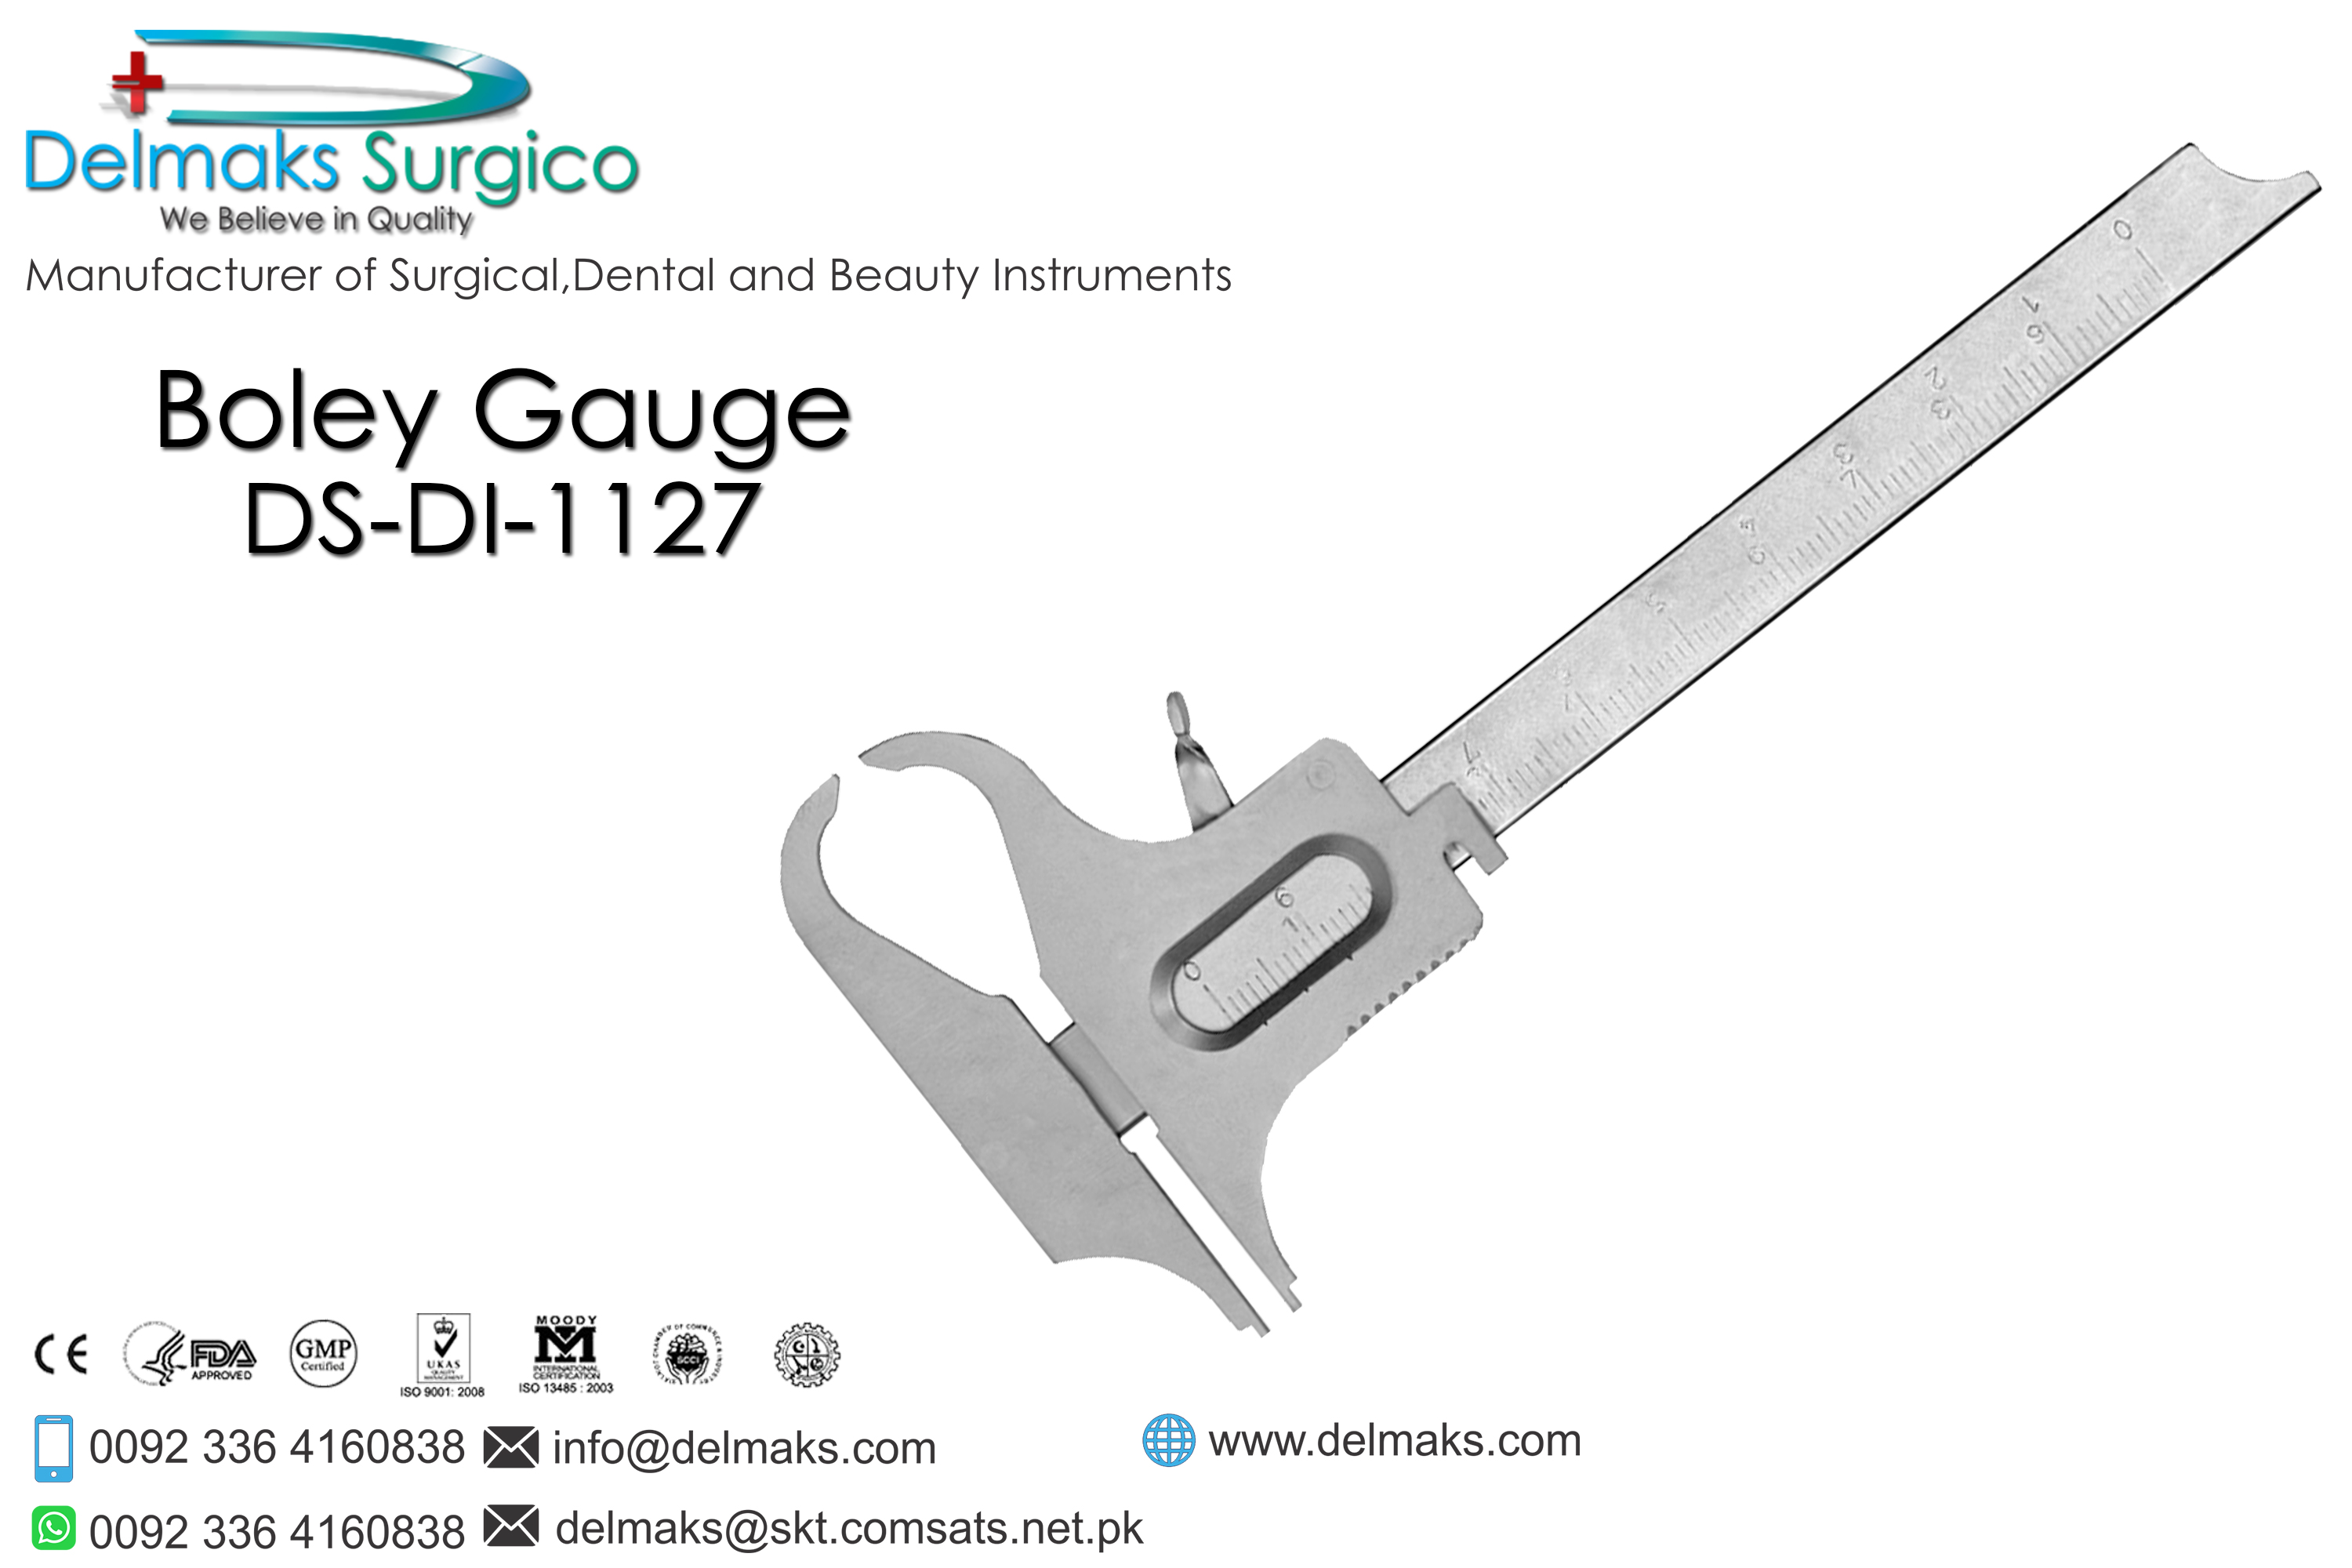 Boley Gauge Laboratory Instruments And Equipments-Dental Instruments-Delmaks Surgico